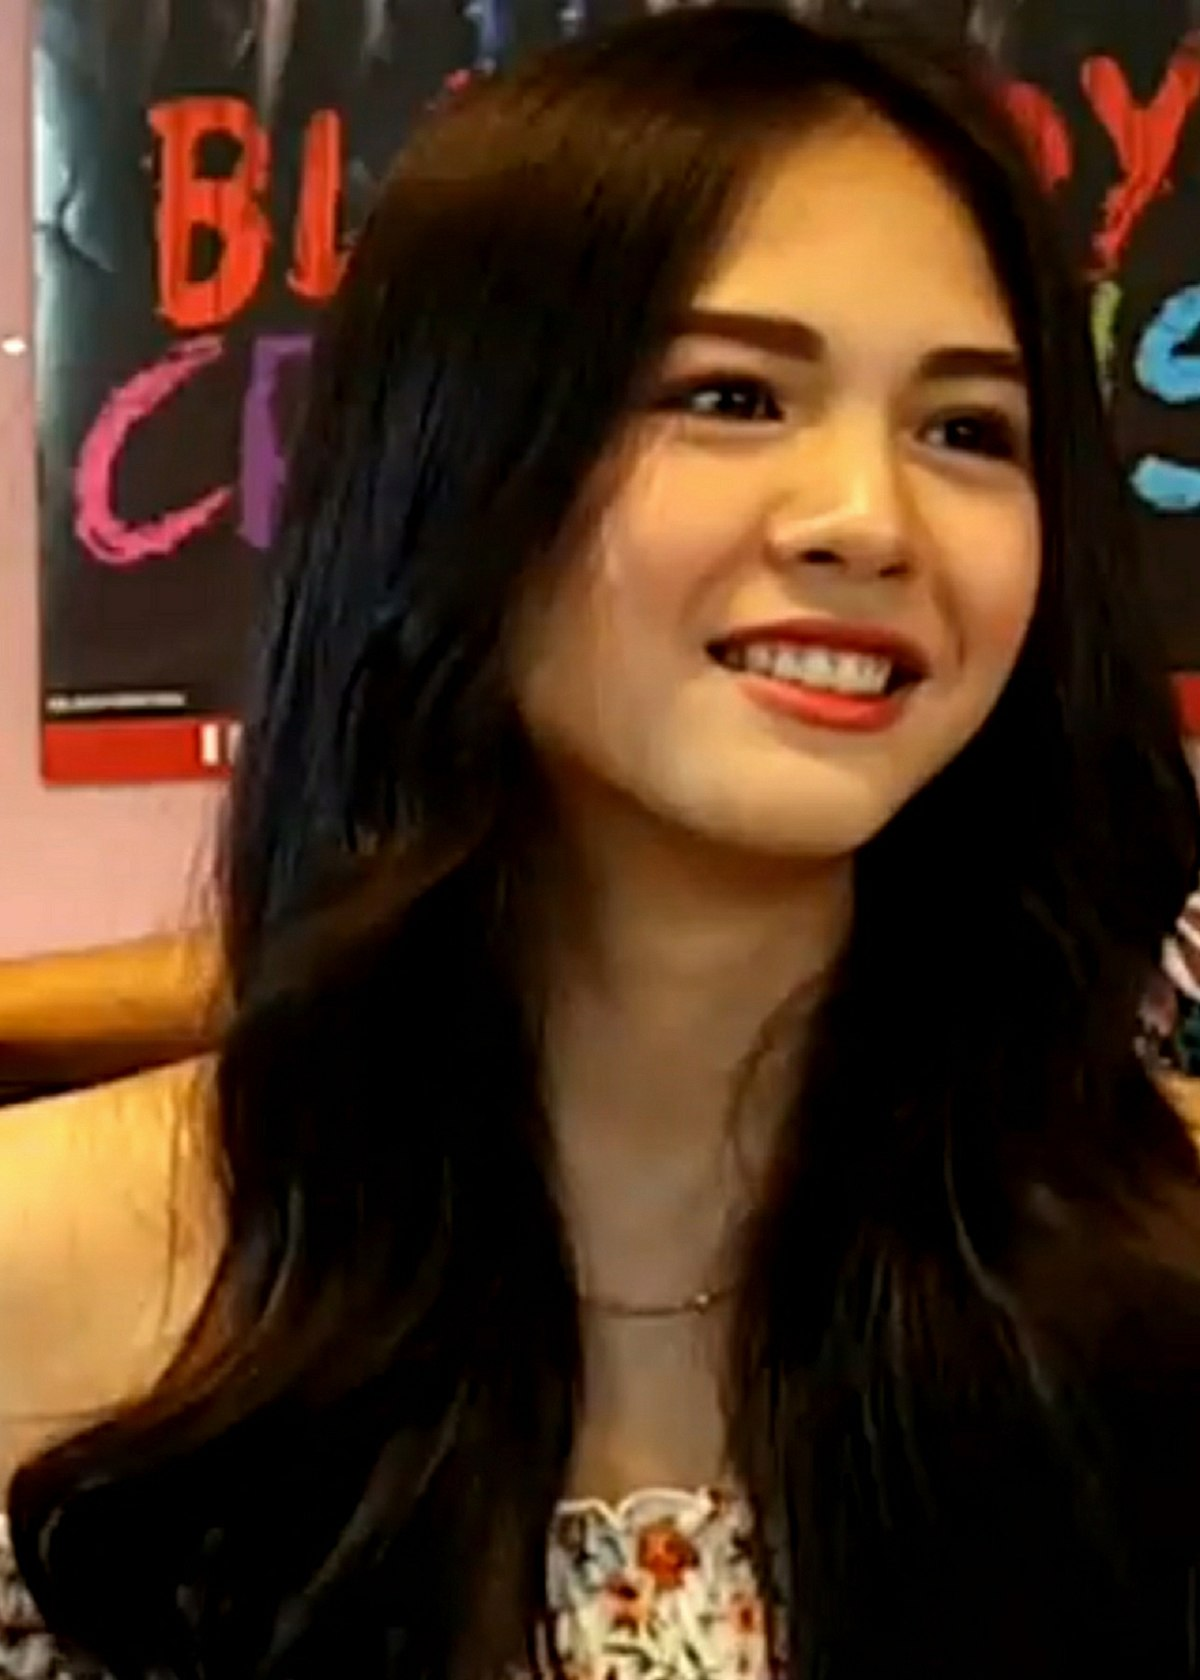 Janella salvador wikipedia la enciclopedia libre for Sa old house music